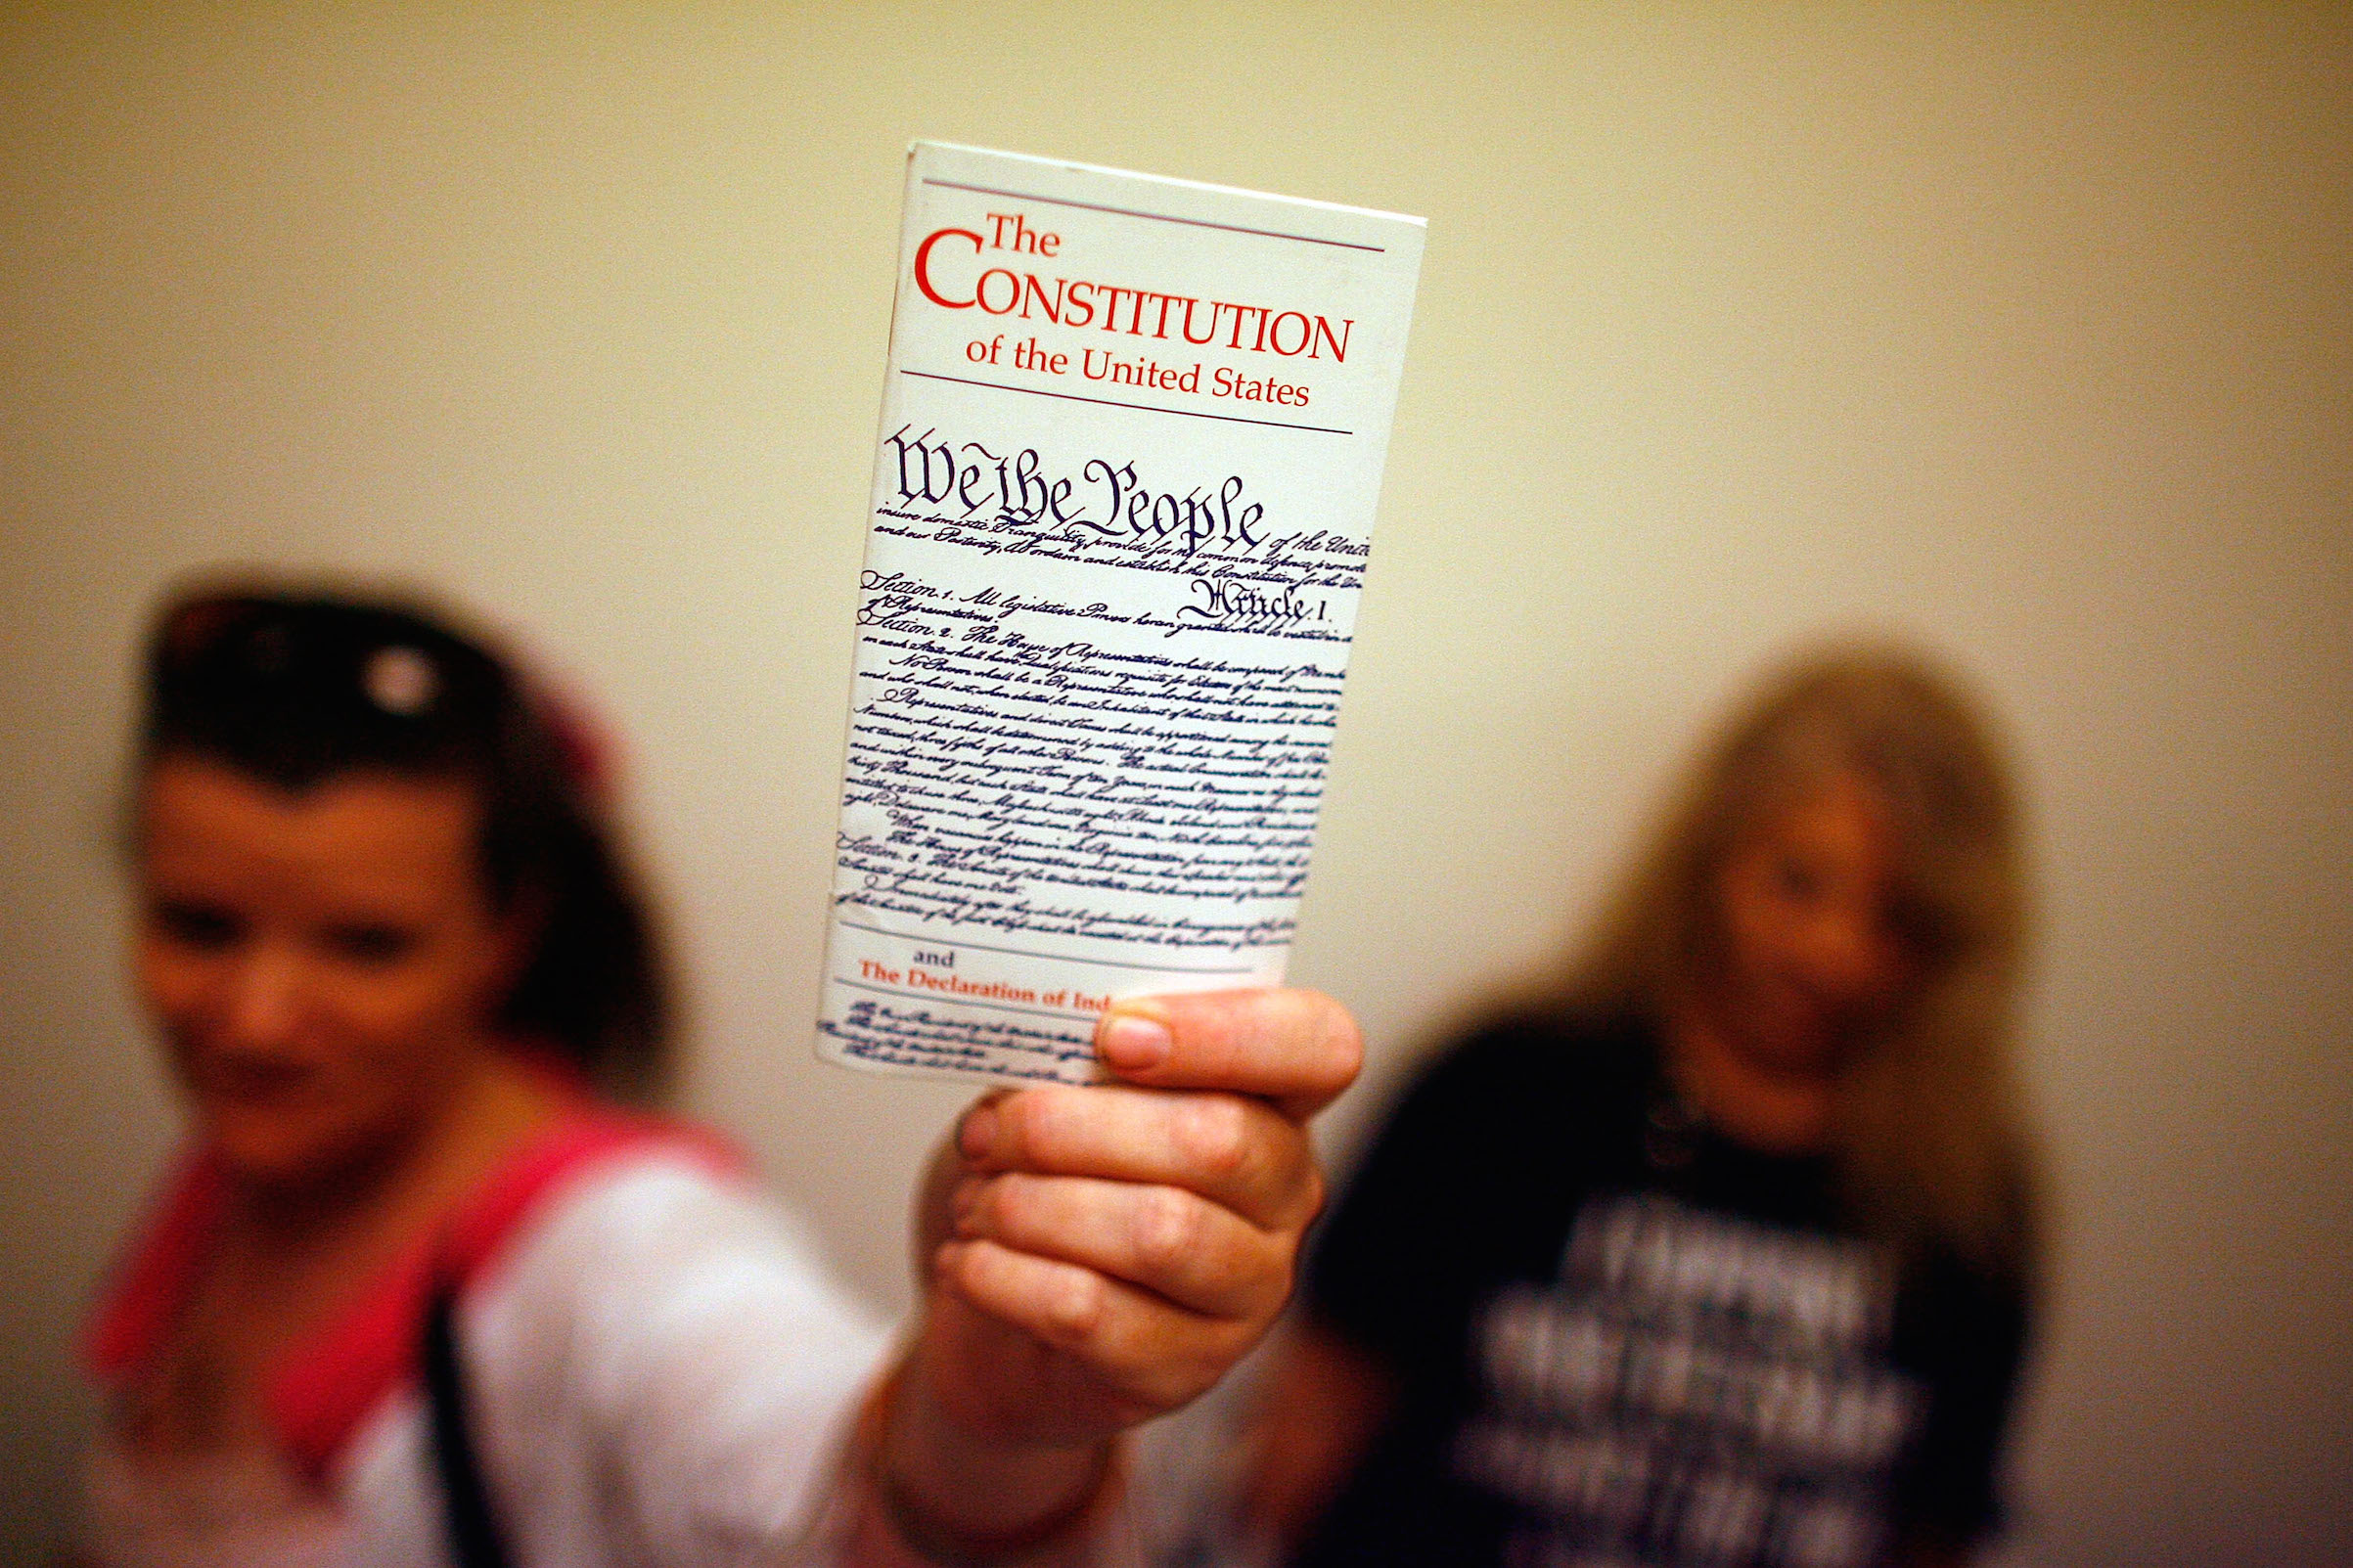 Lisa Petry of Virginia Beach, Va., holds up a copy of the U.S. Constitution while waiting in line to attend the House Judiciary Committee hearing on the  Executive Power and Its Constitutional Limitations  on Captiol Hill in 2008 in Washington, DC.